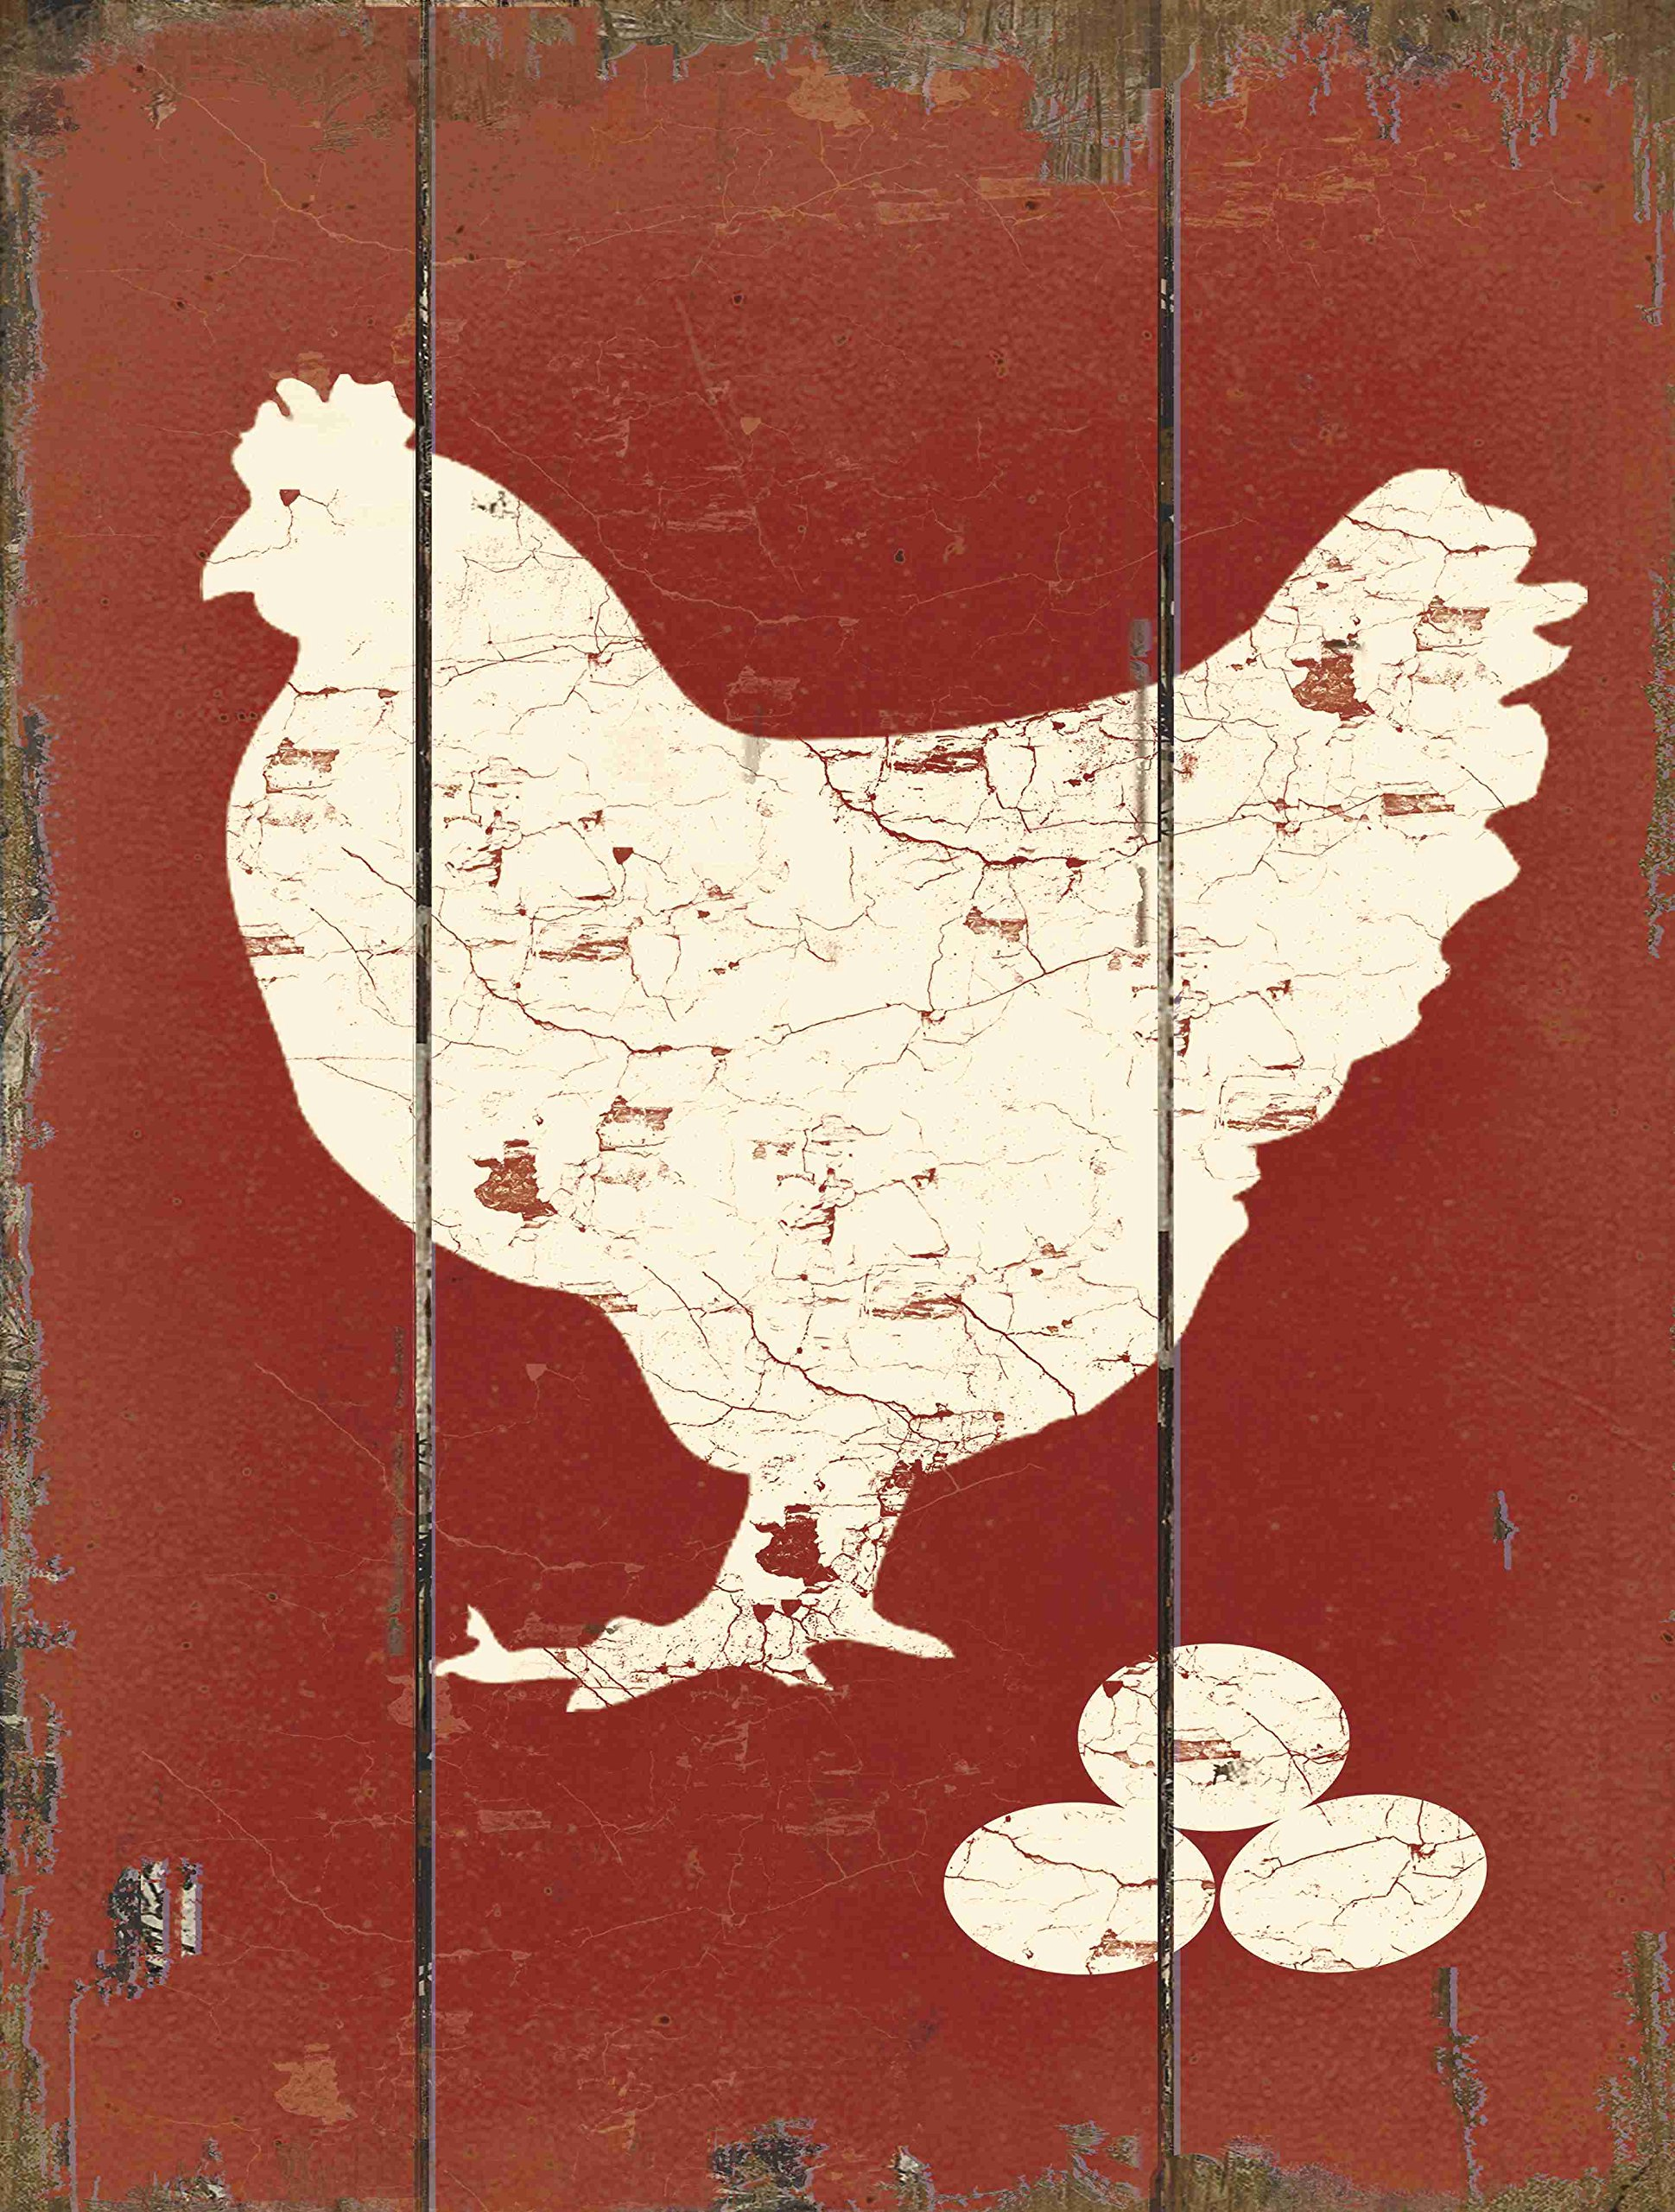 Barnyard Designs White Hen Laying Fresh Eggs Retro Vintage Wood Plaque Bar Sign Country Home Decor 15.75'' x 11.75''